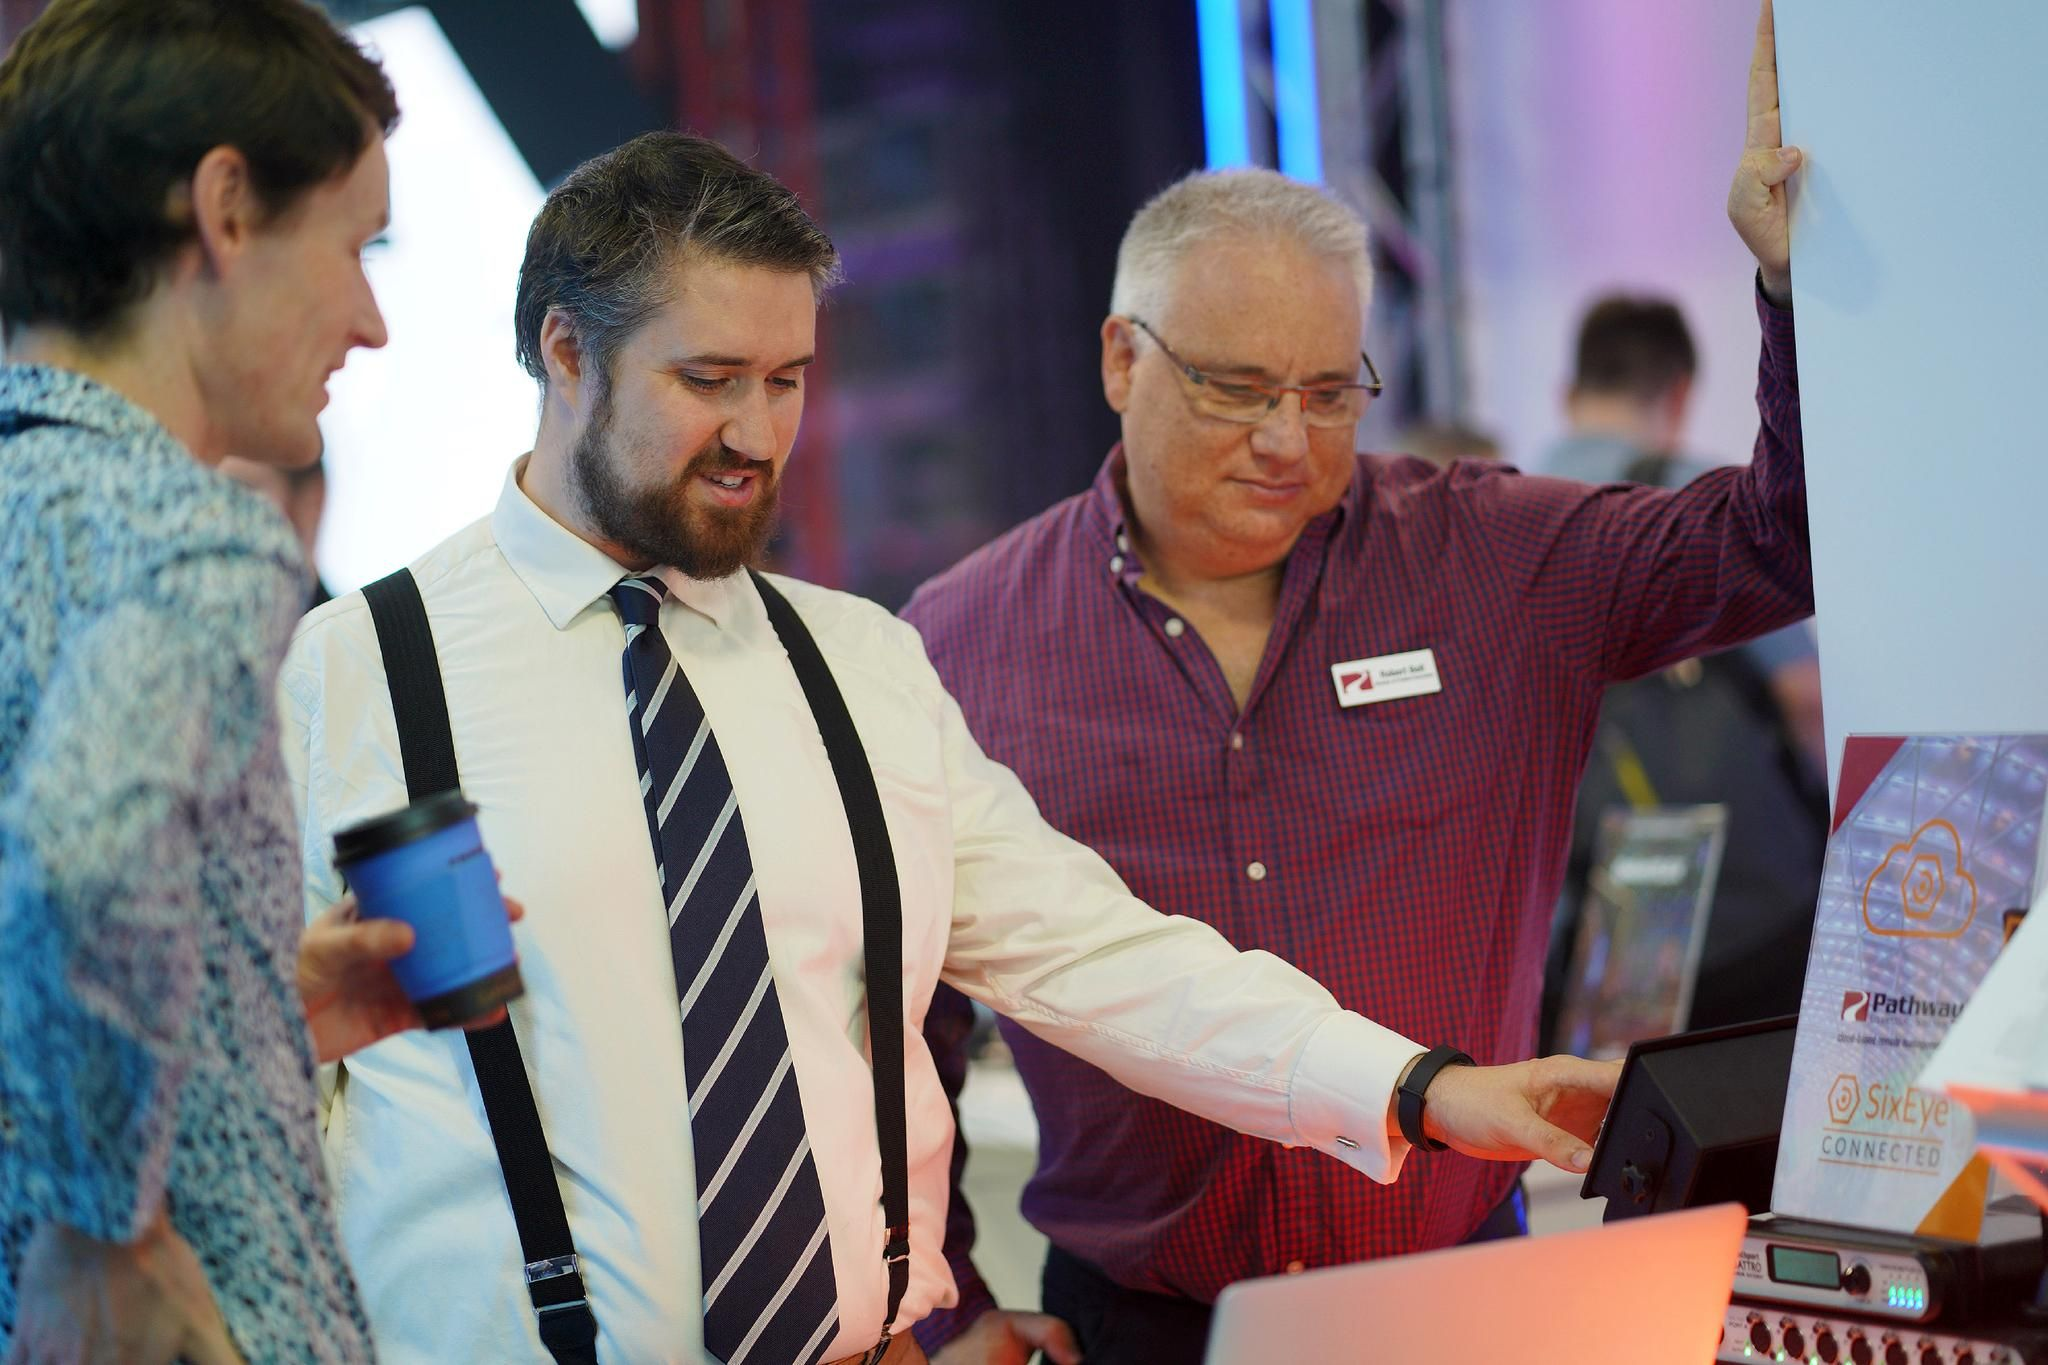 Find out about PLASA Online 2021